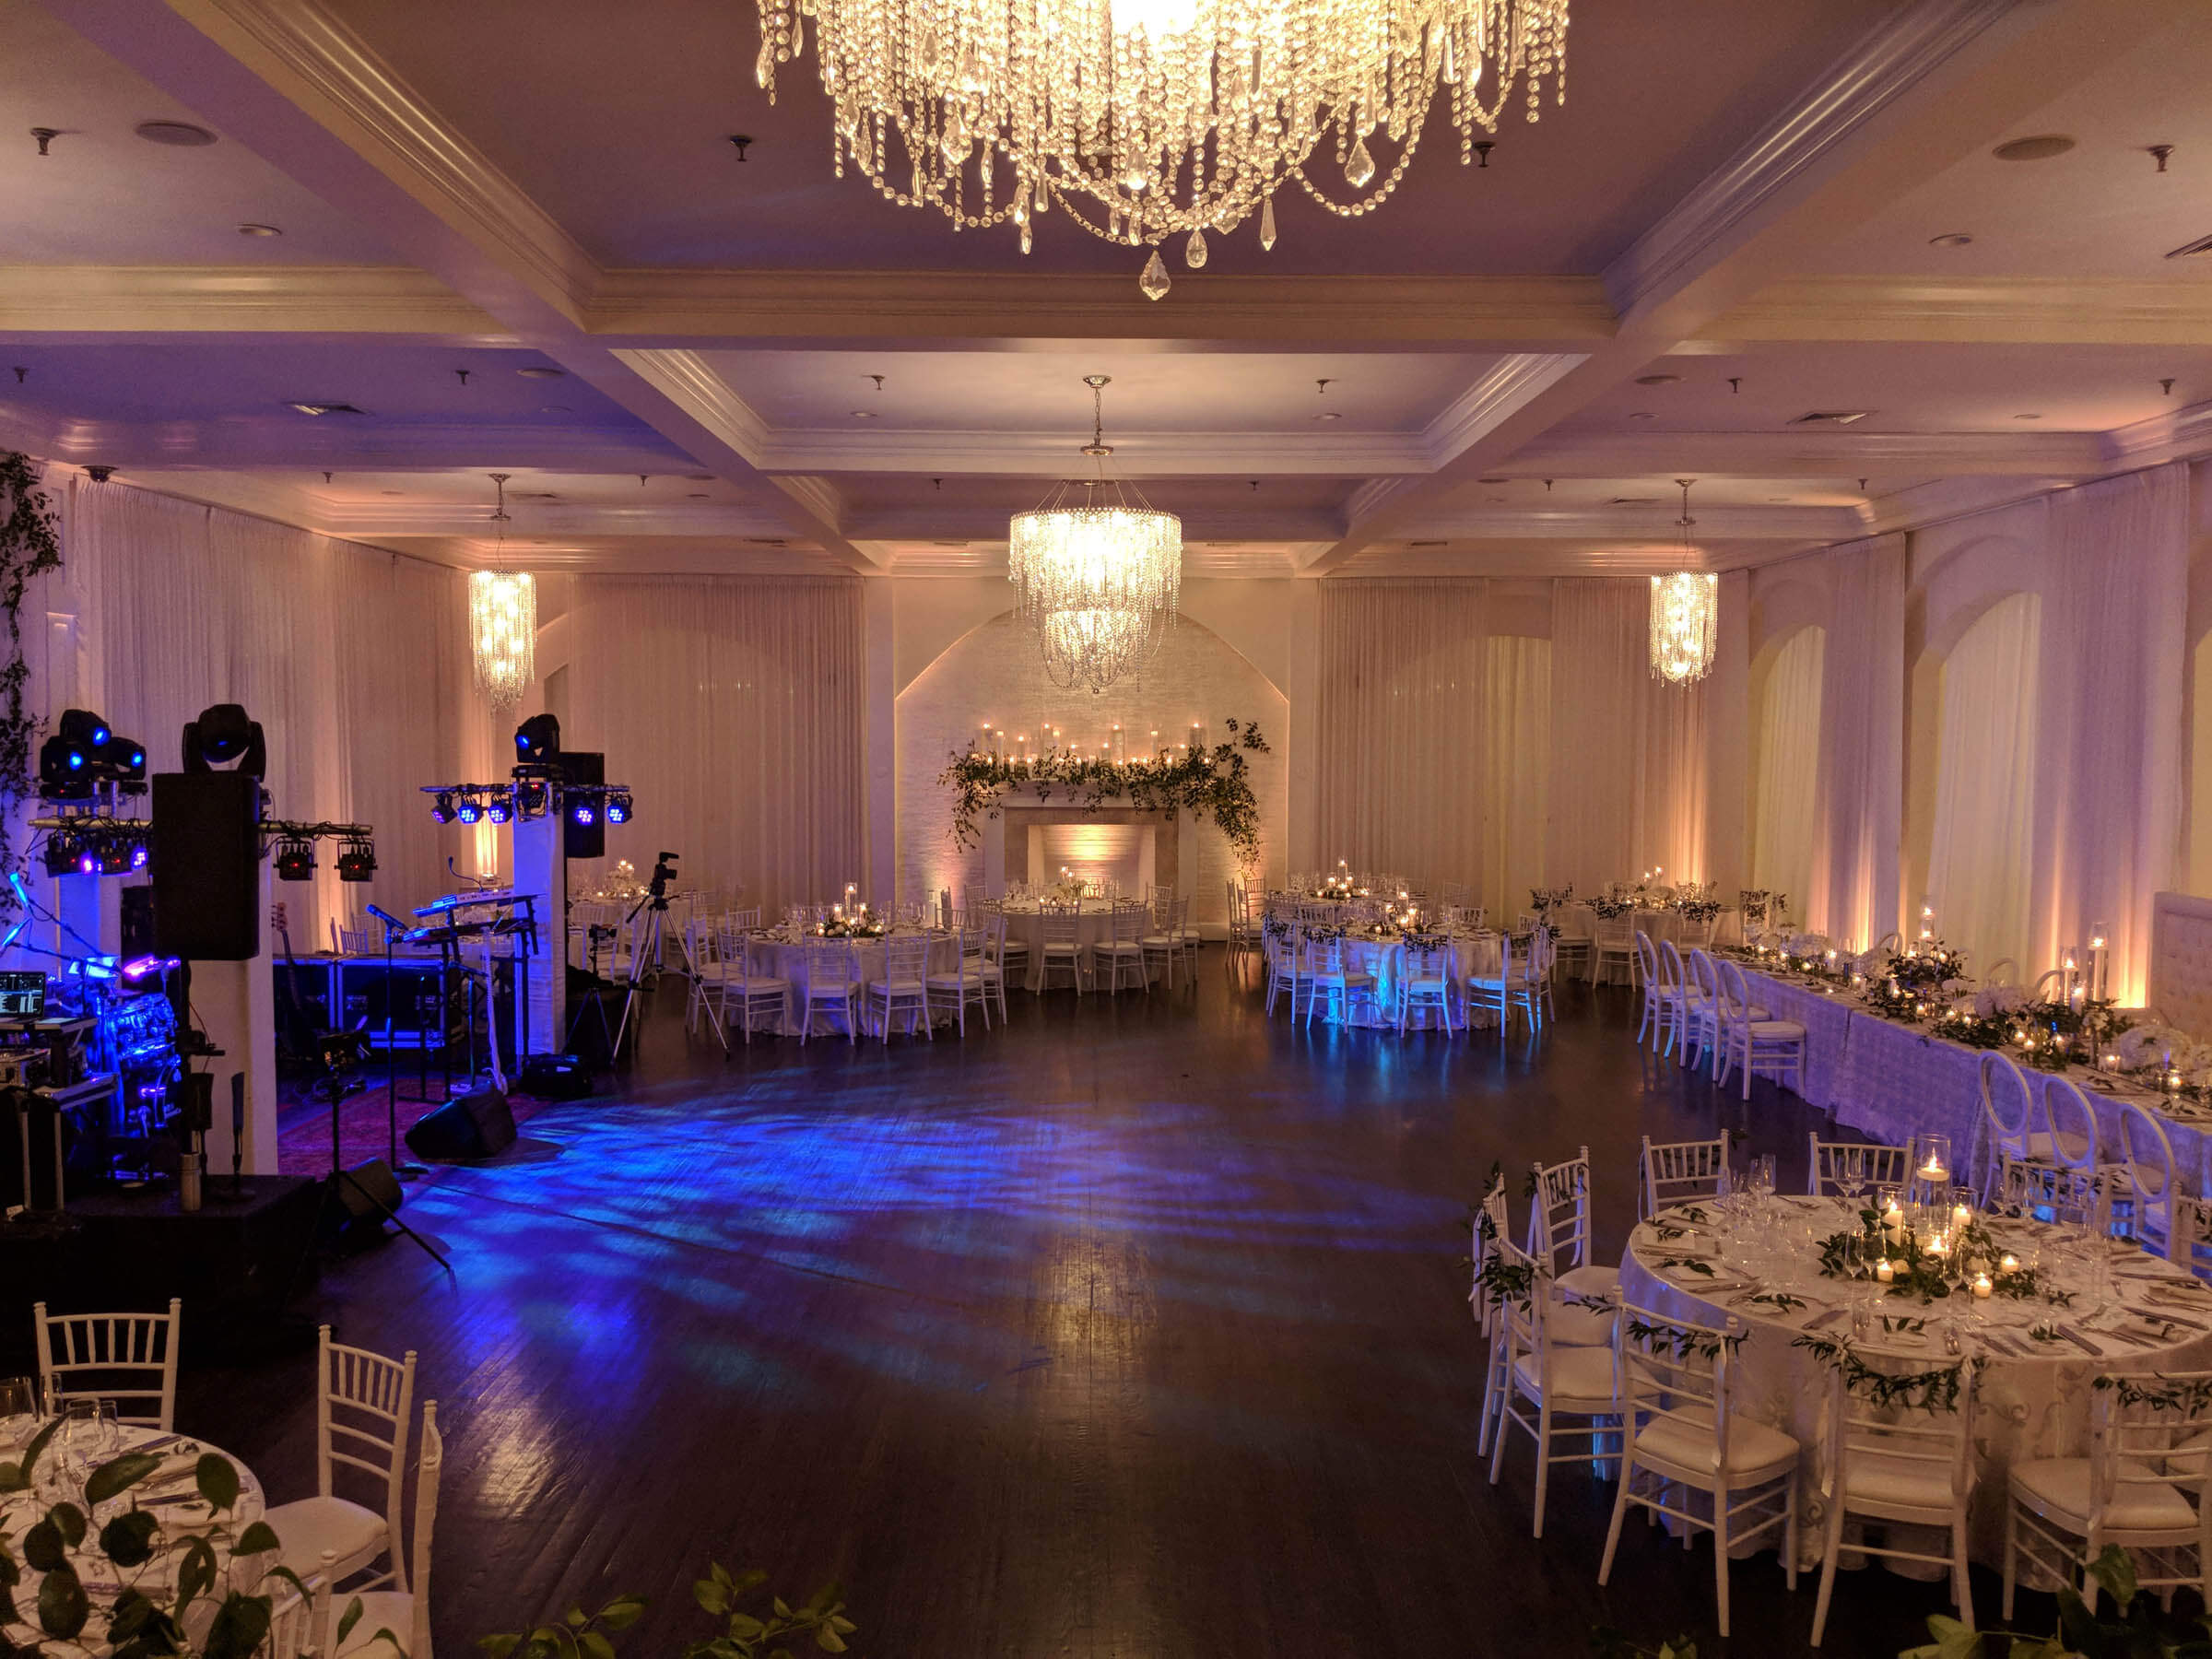 Boston Wedding Venue Photo Gallery And Showcase Of Live Events